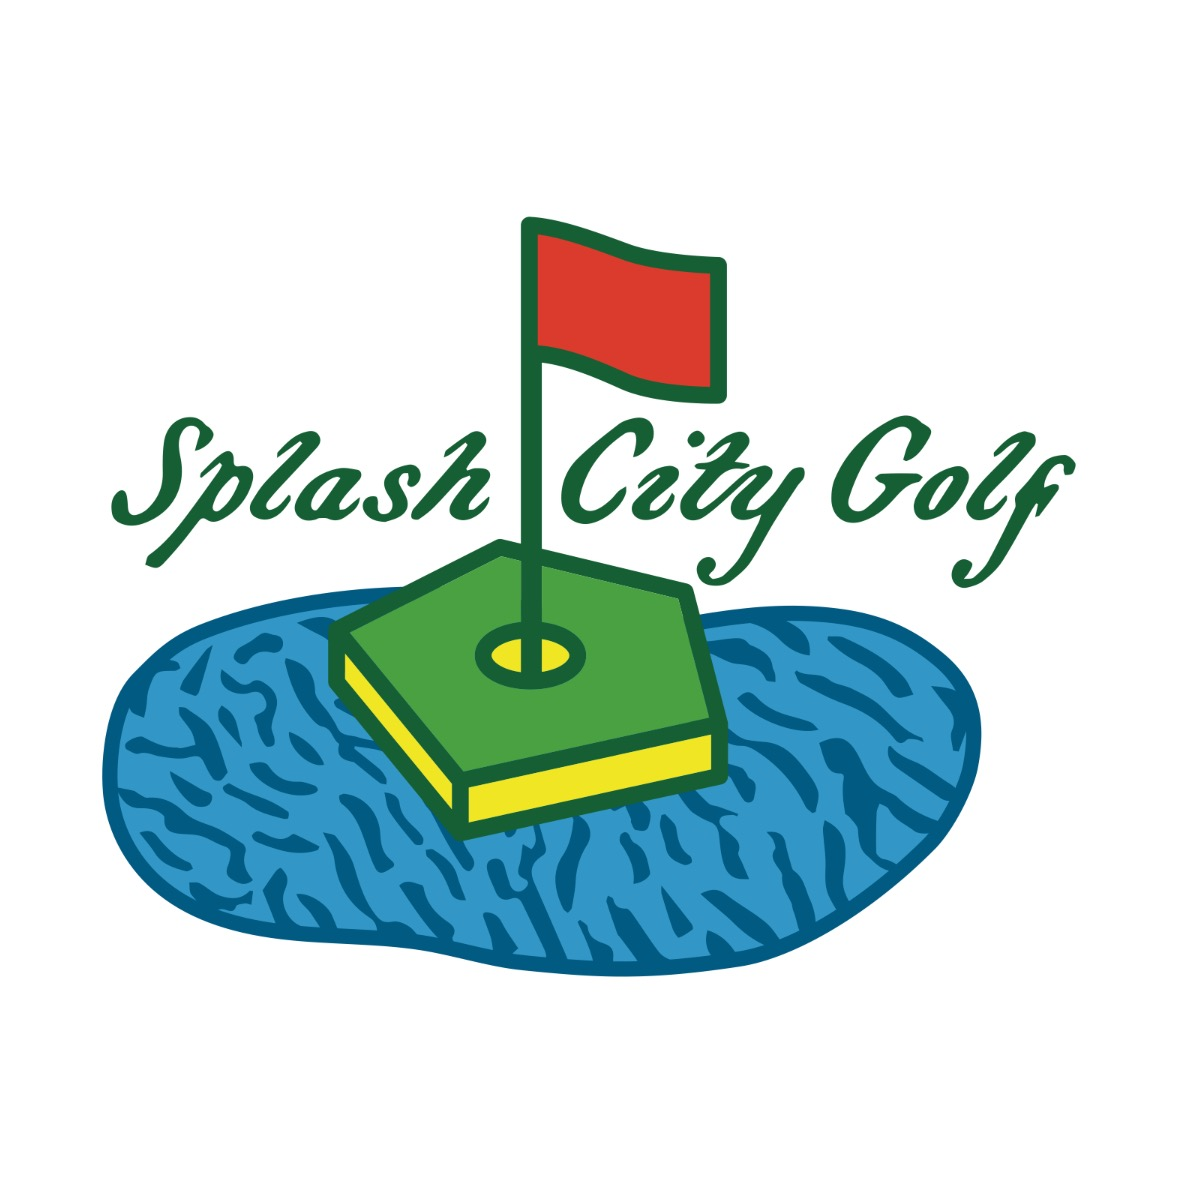 Splash City Golf